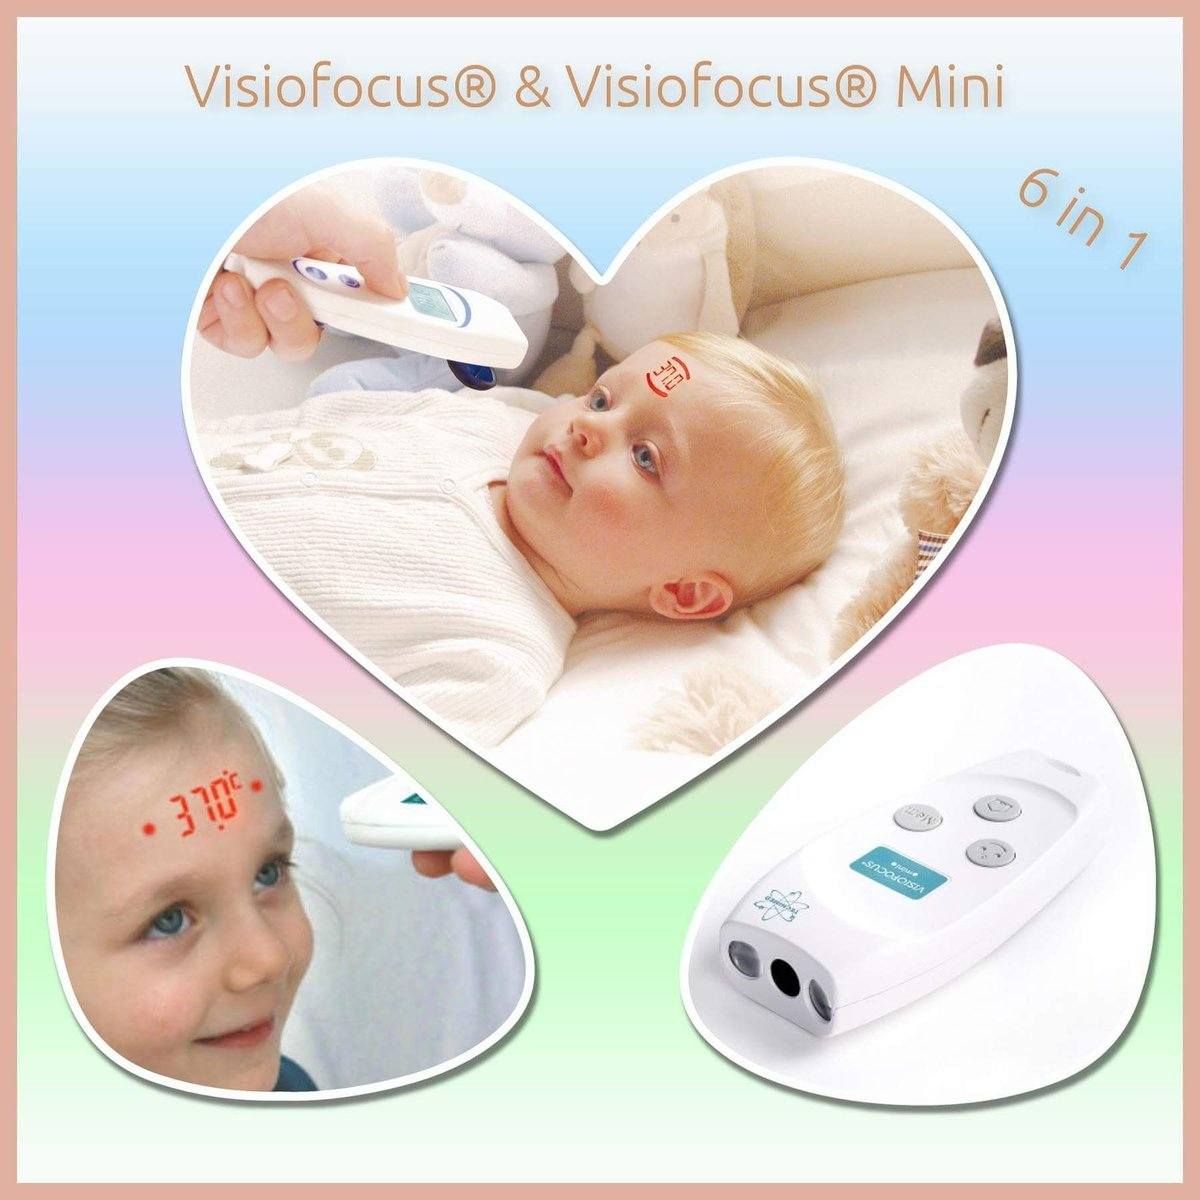 #innovation , Visiofocus best solution for your baby. #fieber #grippe #noncontact # thermometer<br>http://pic.twitter.com/CXgSipB9fs